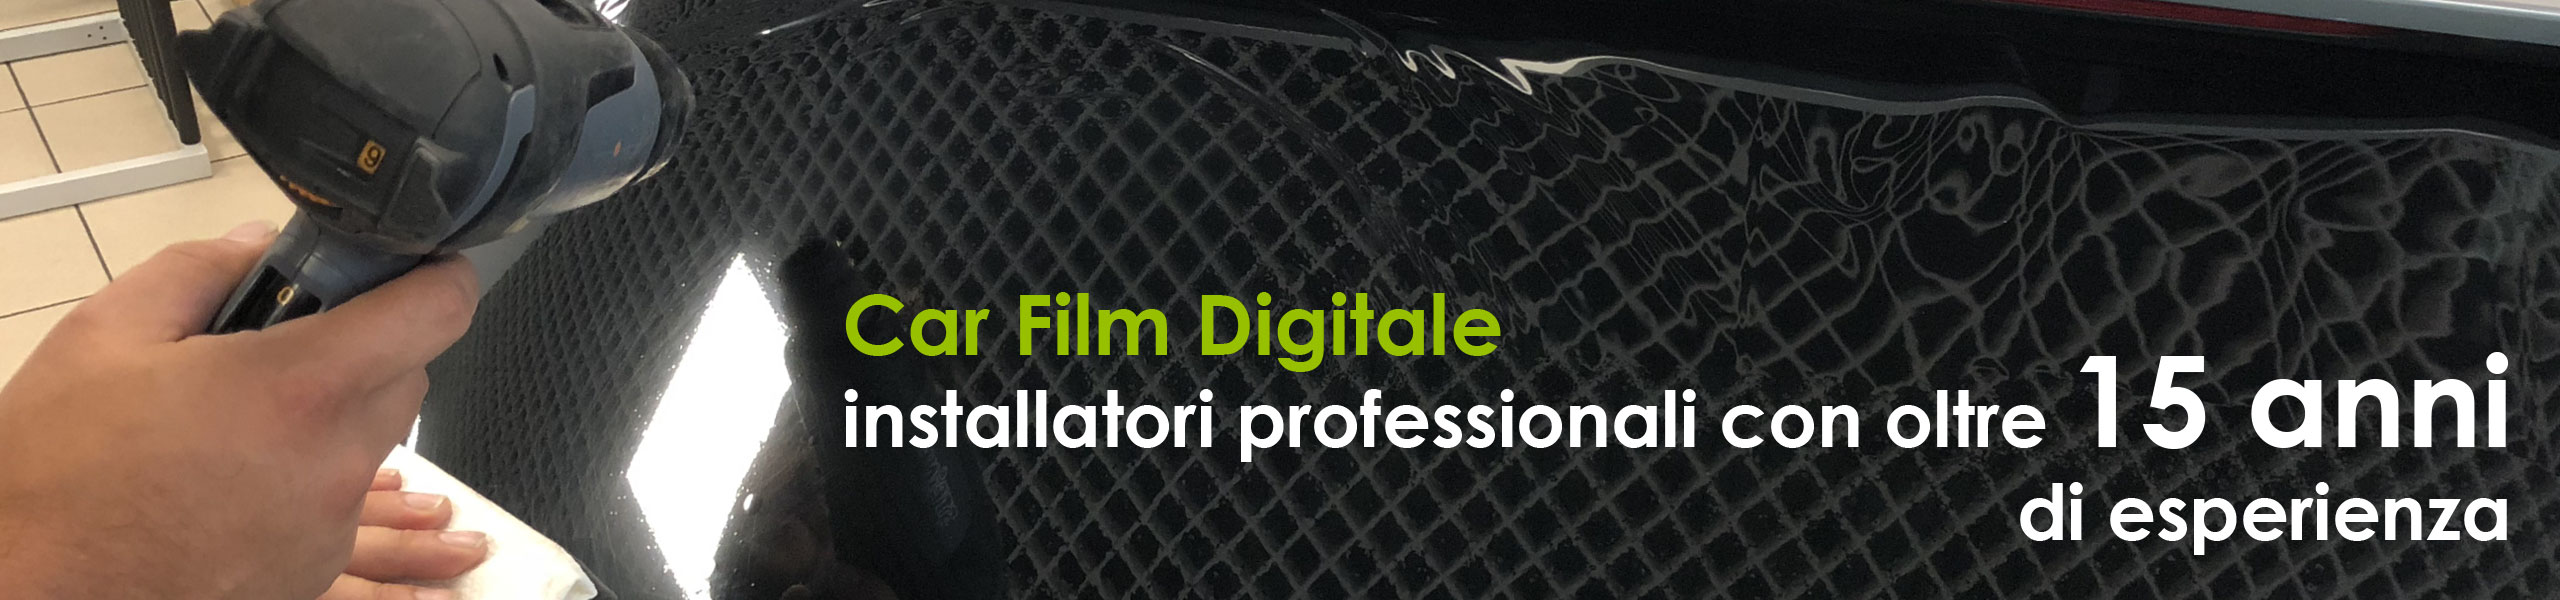 Car Film Digitale Installatori Professionali di Pellicole